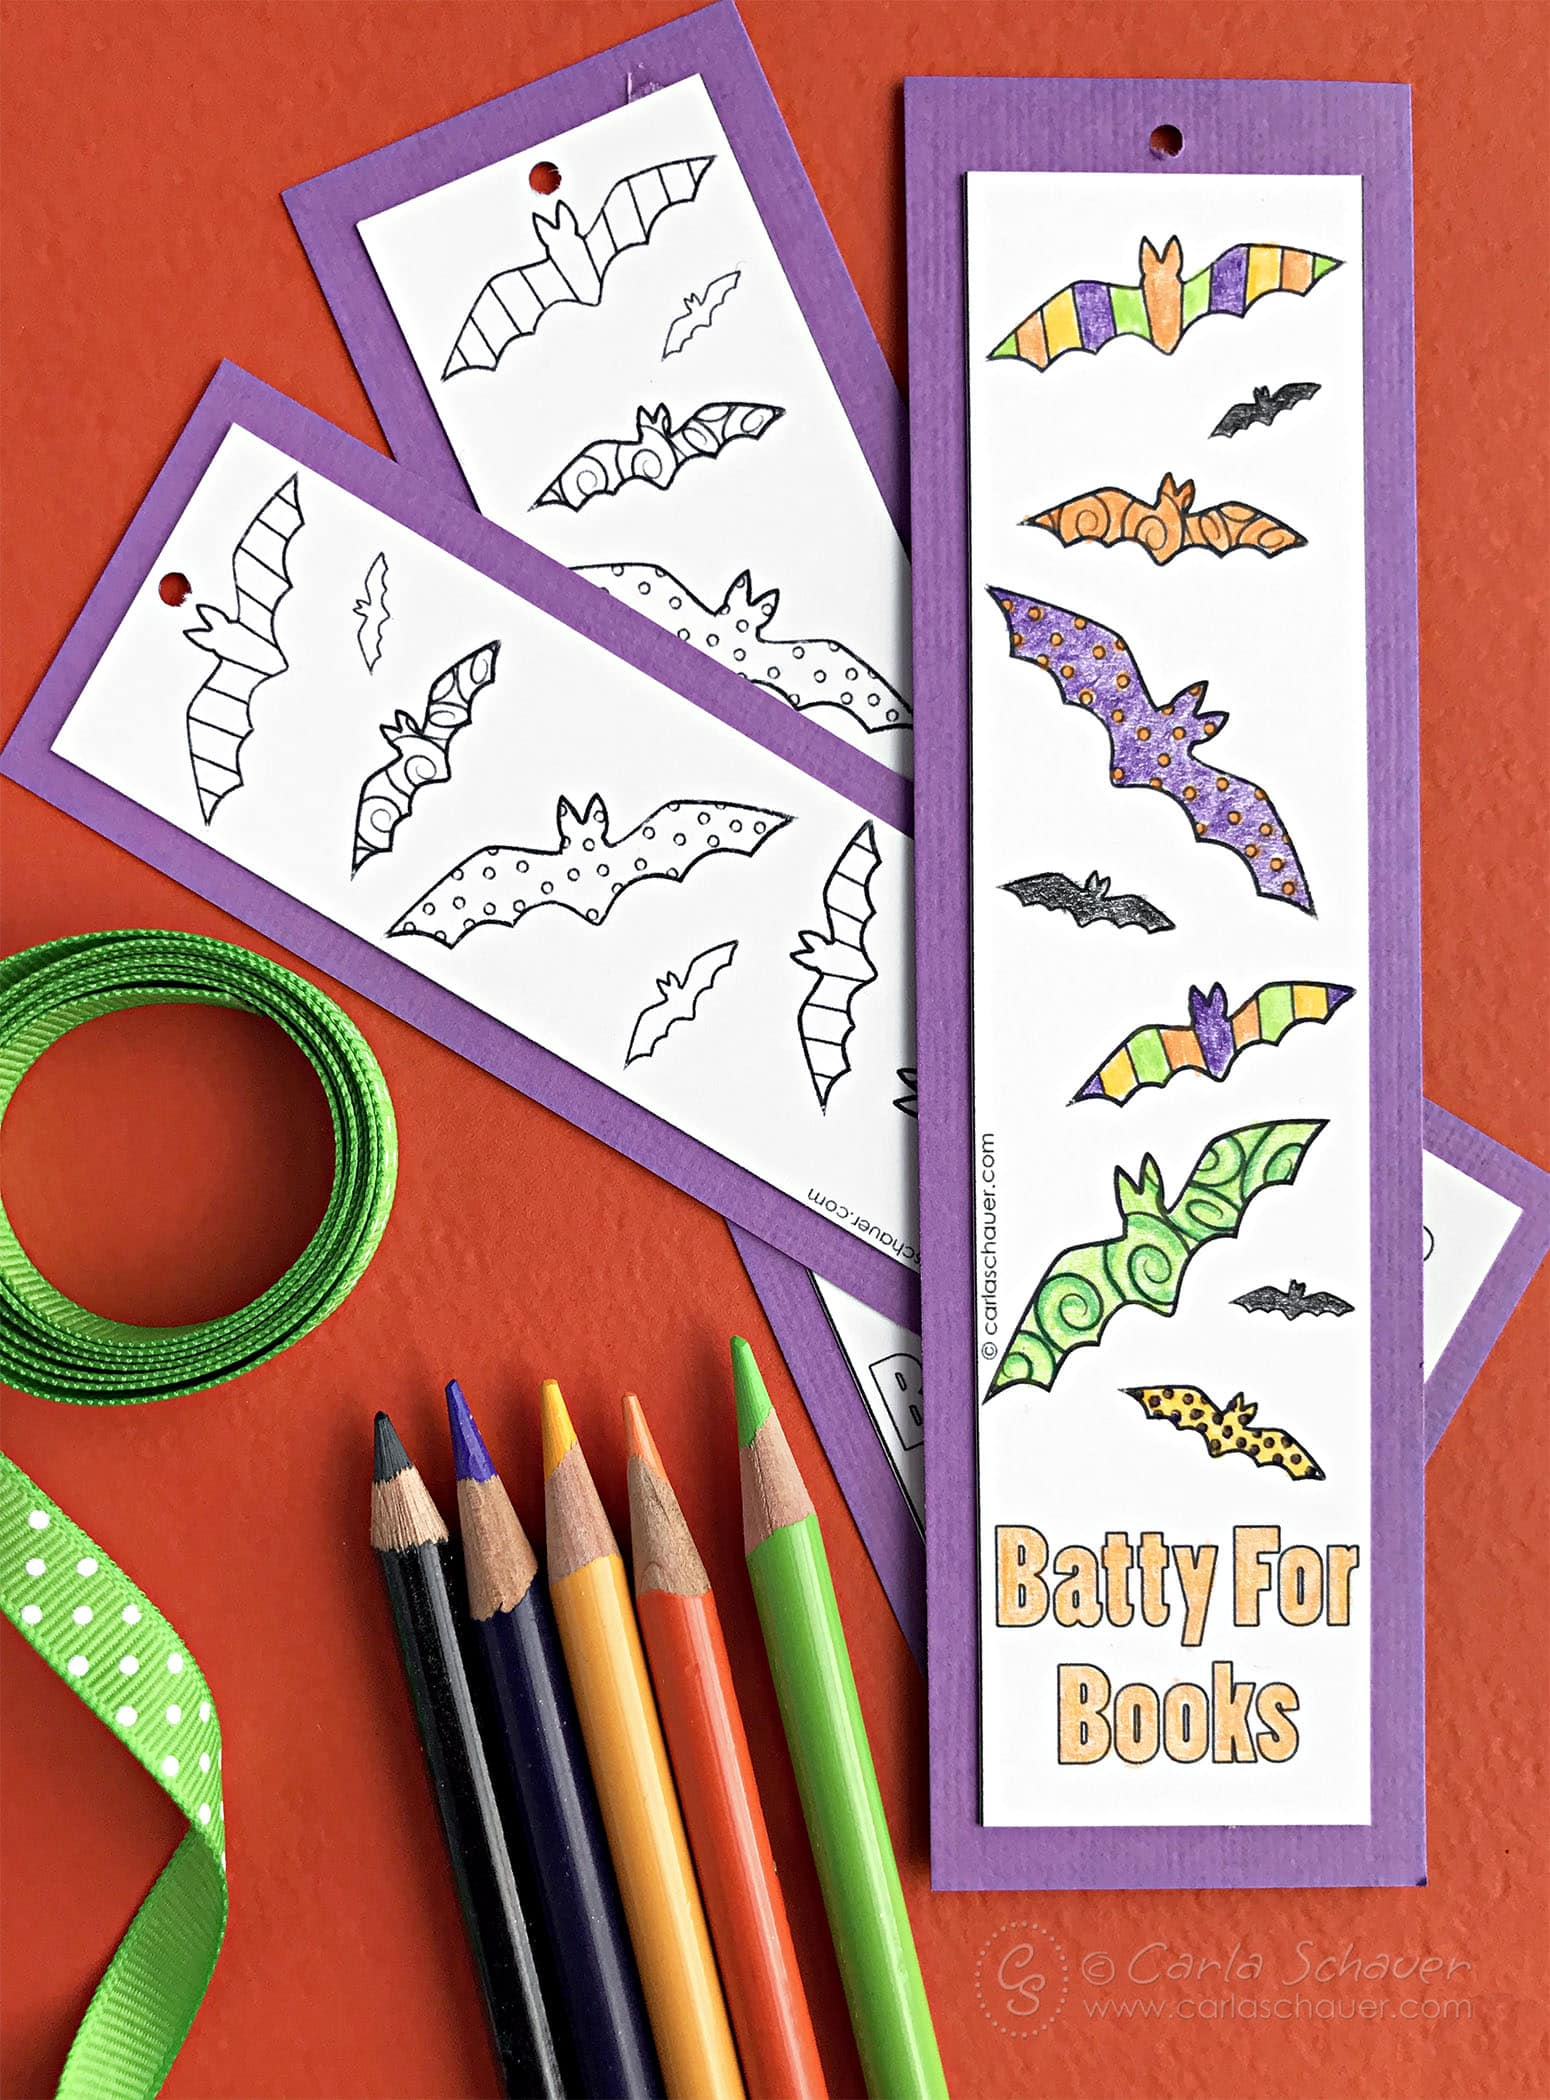 Halloween bat bookmarks with purple borders and colored pencils on orange background